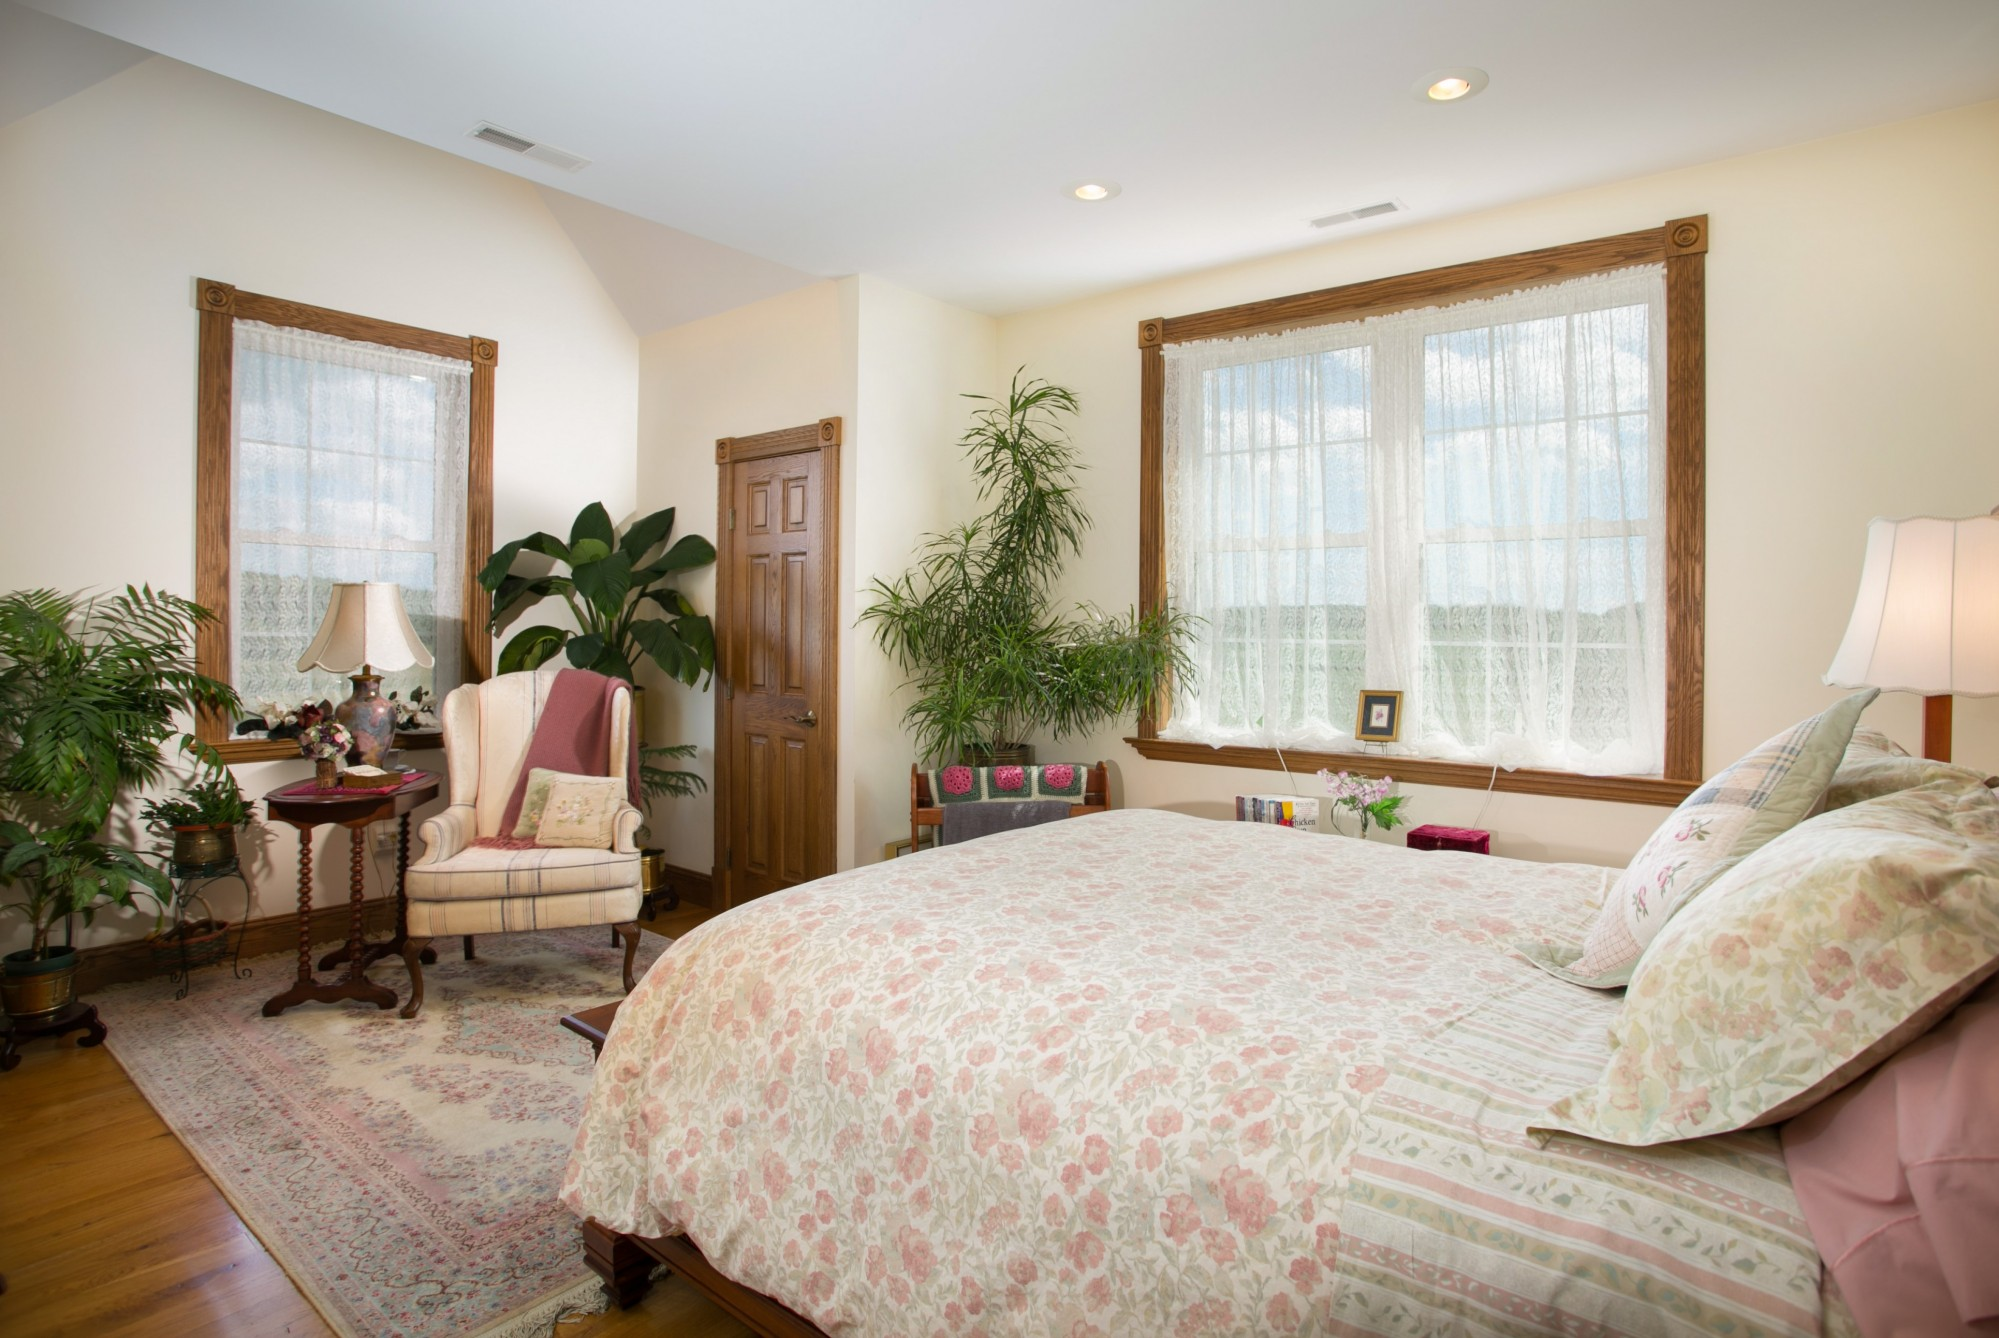 Bed And Breakfast Mansfield Bed Breakfasts Destination Mansfield